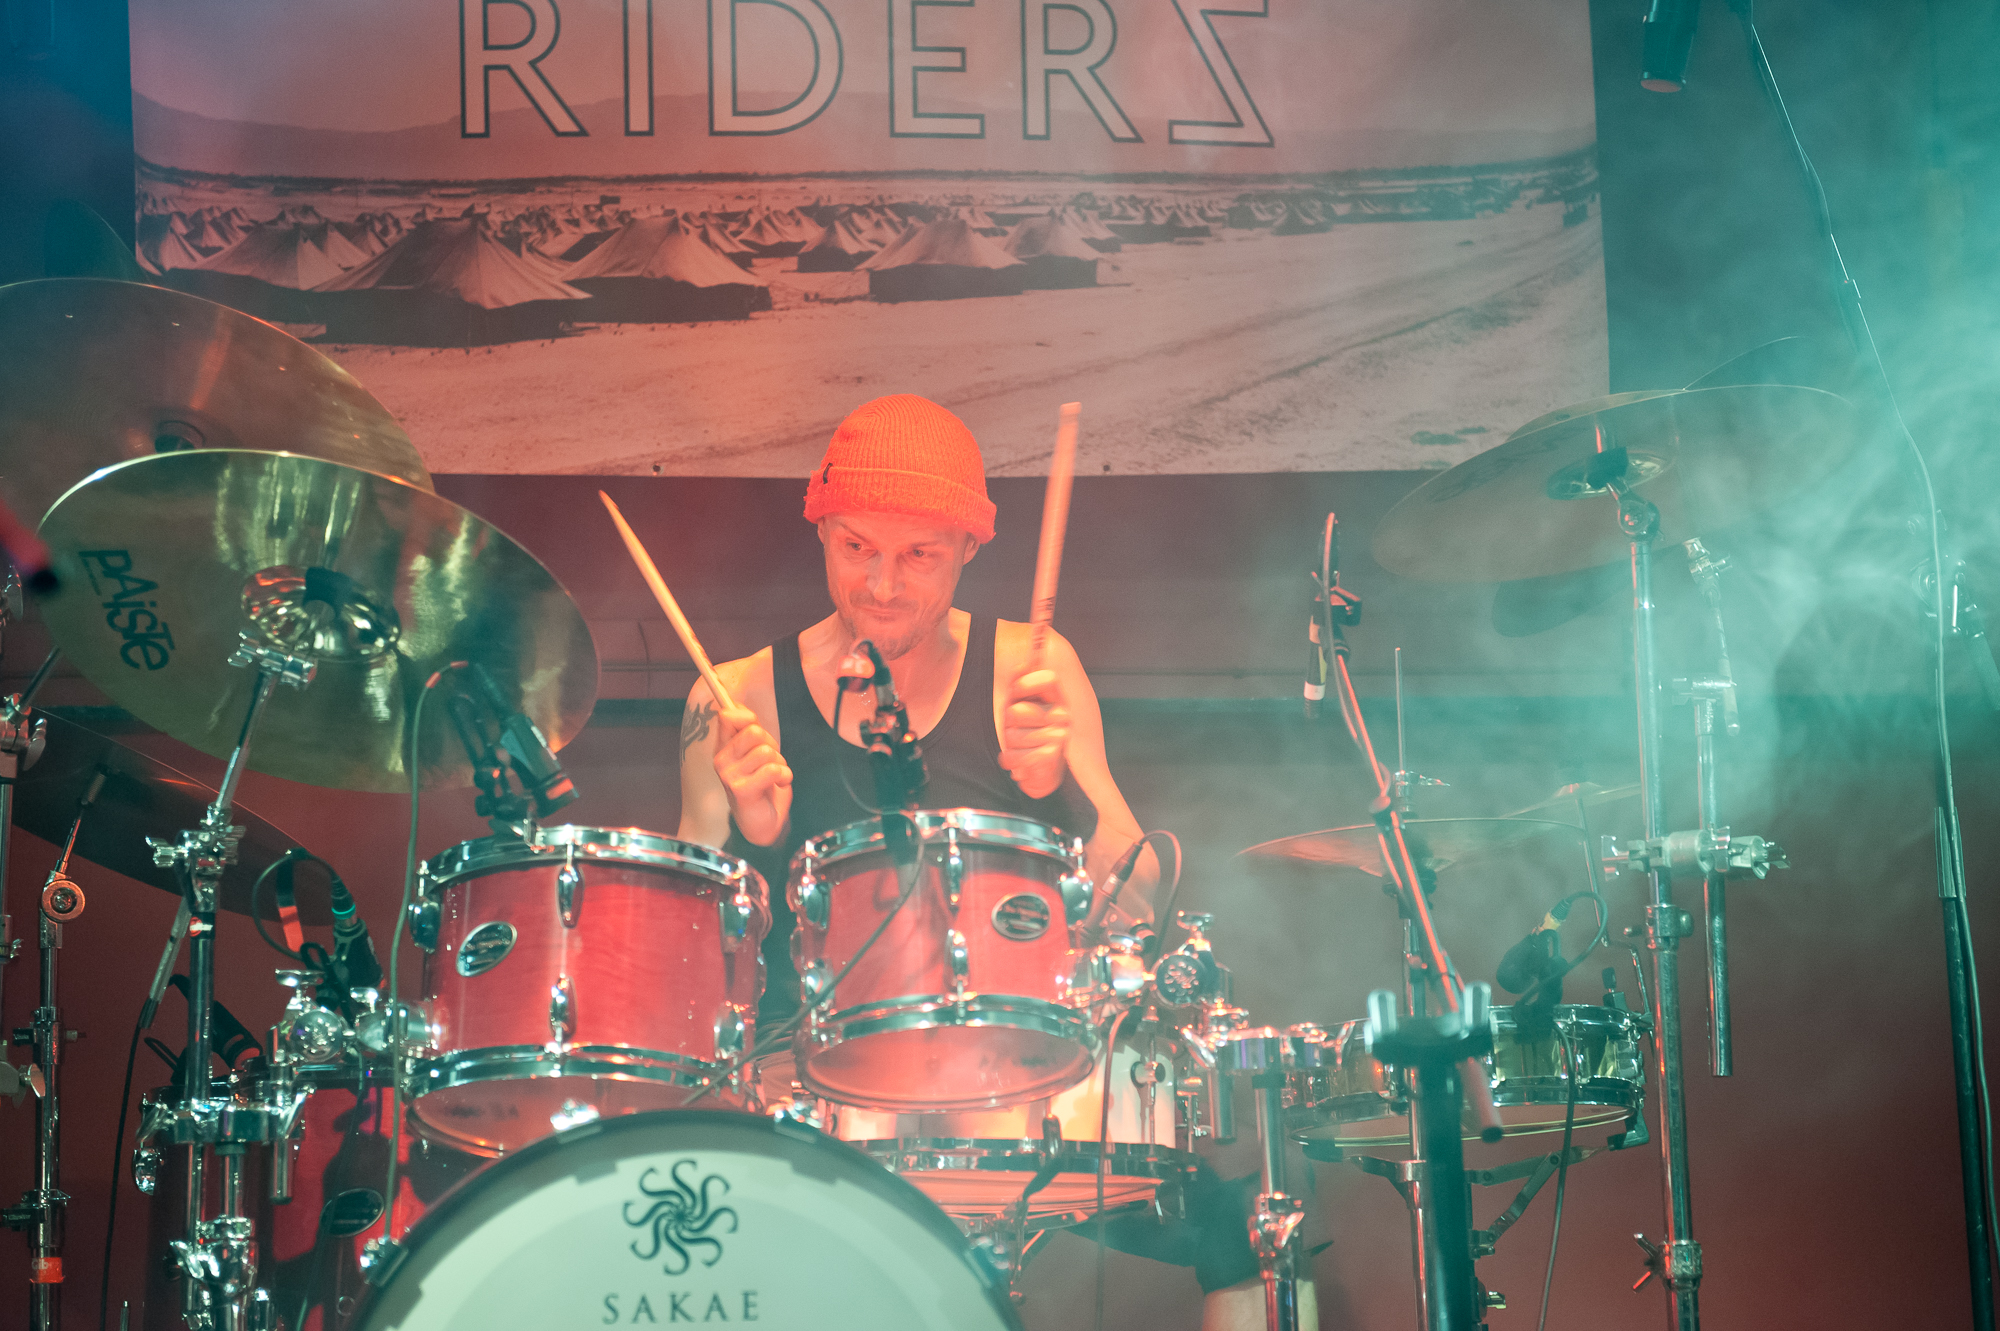 03_2016_05_20_Turock_Black Space Riders-9333